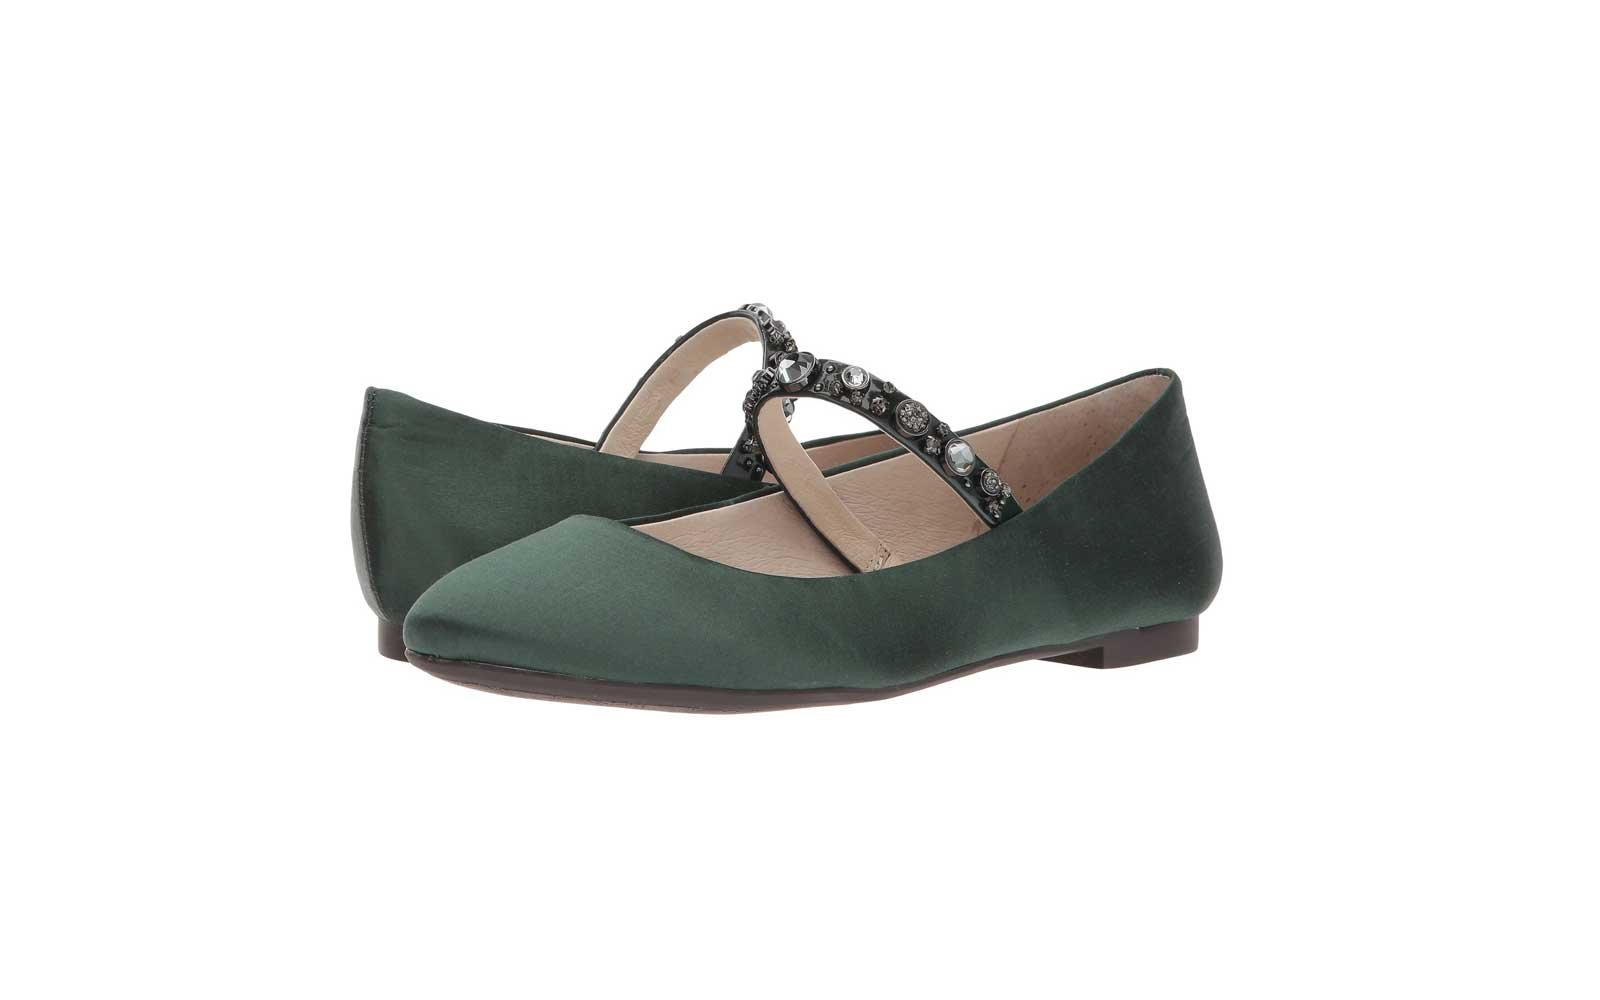 68ef27a90828 21 Comfortable Women s Party Shoes